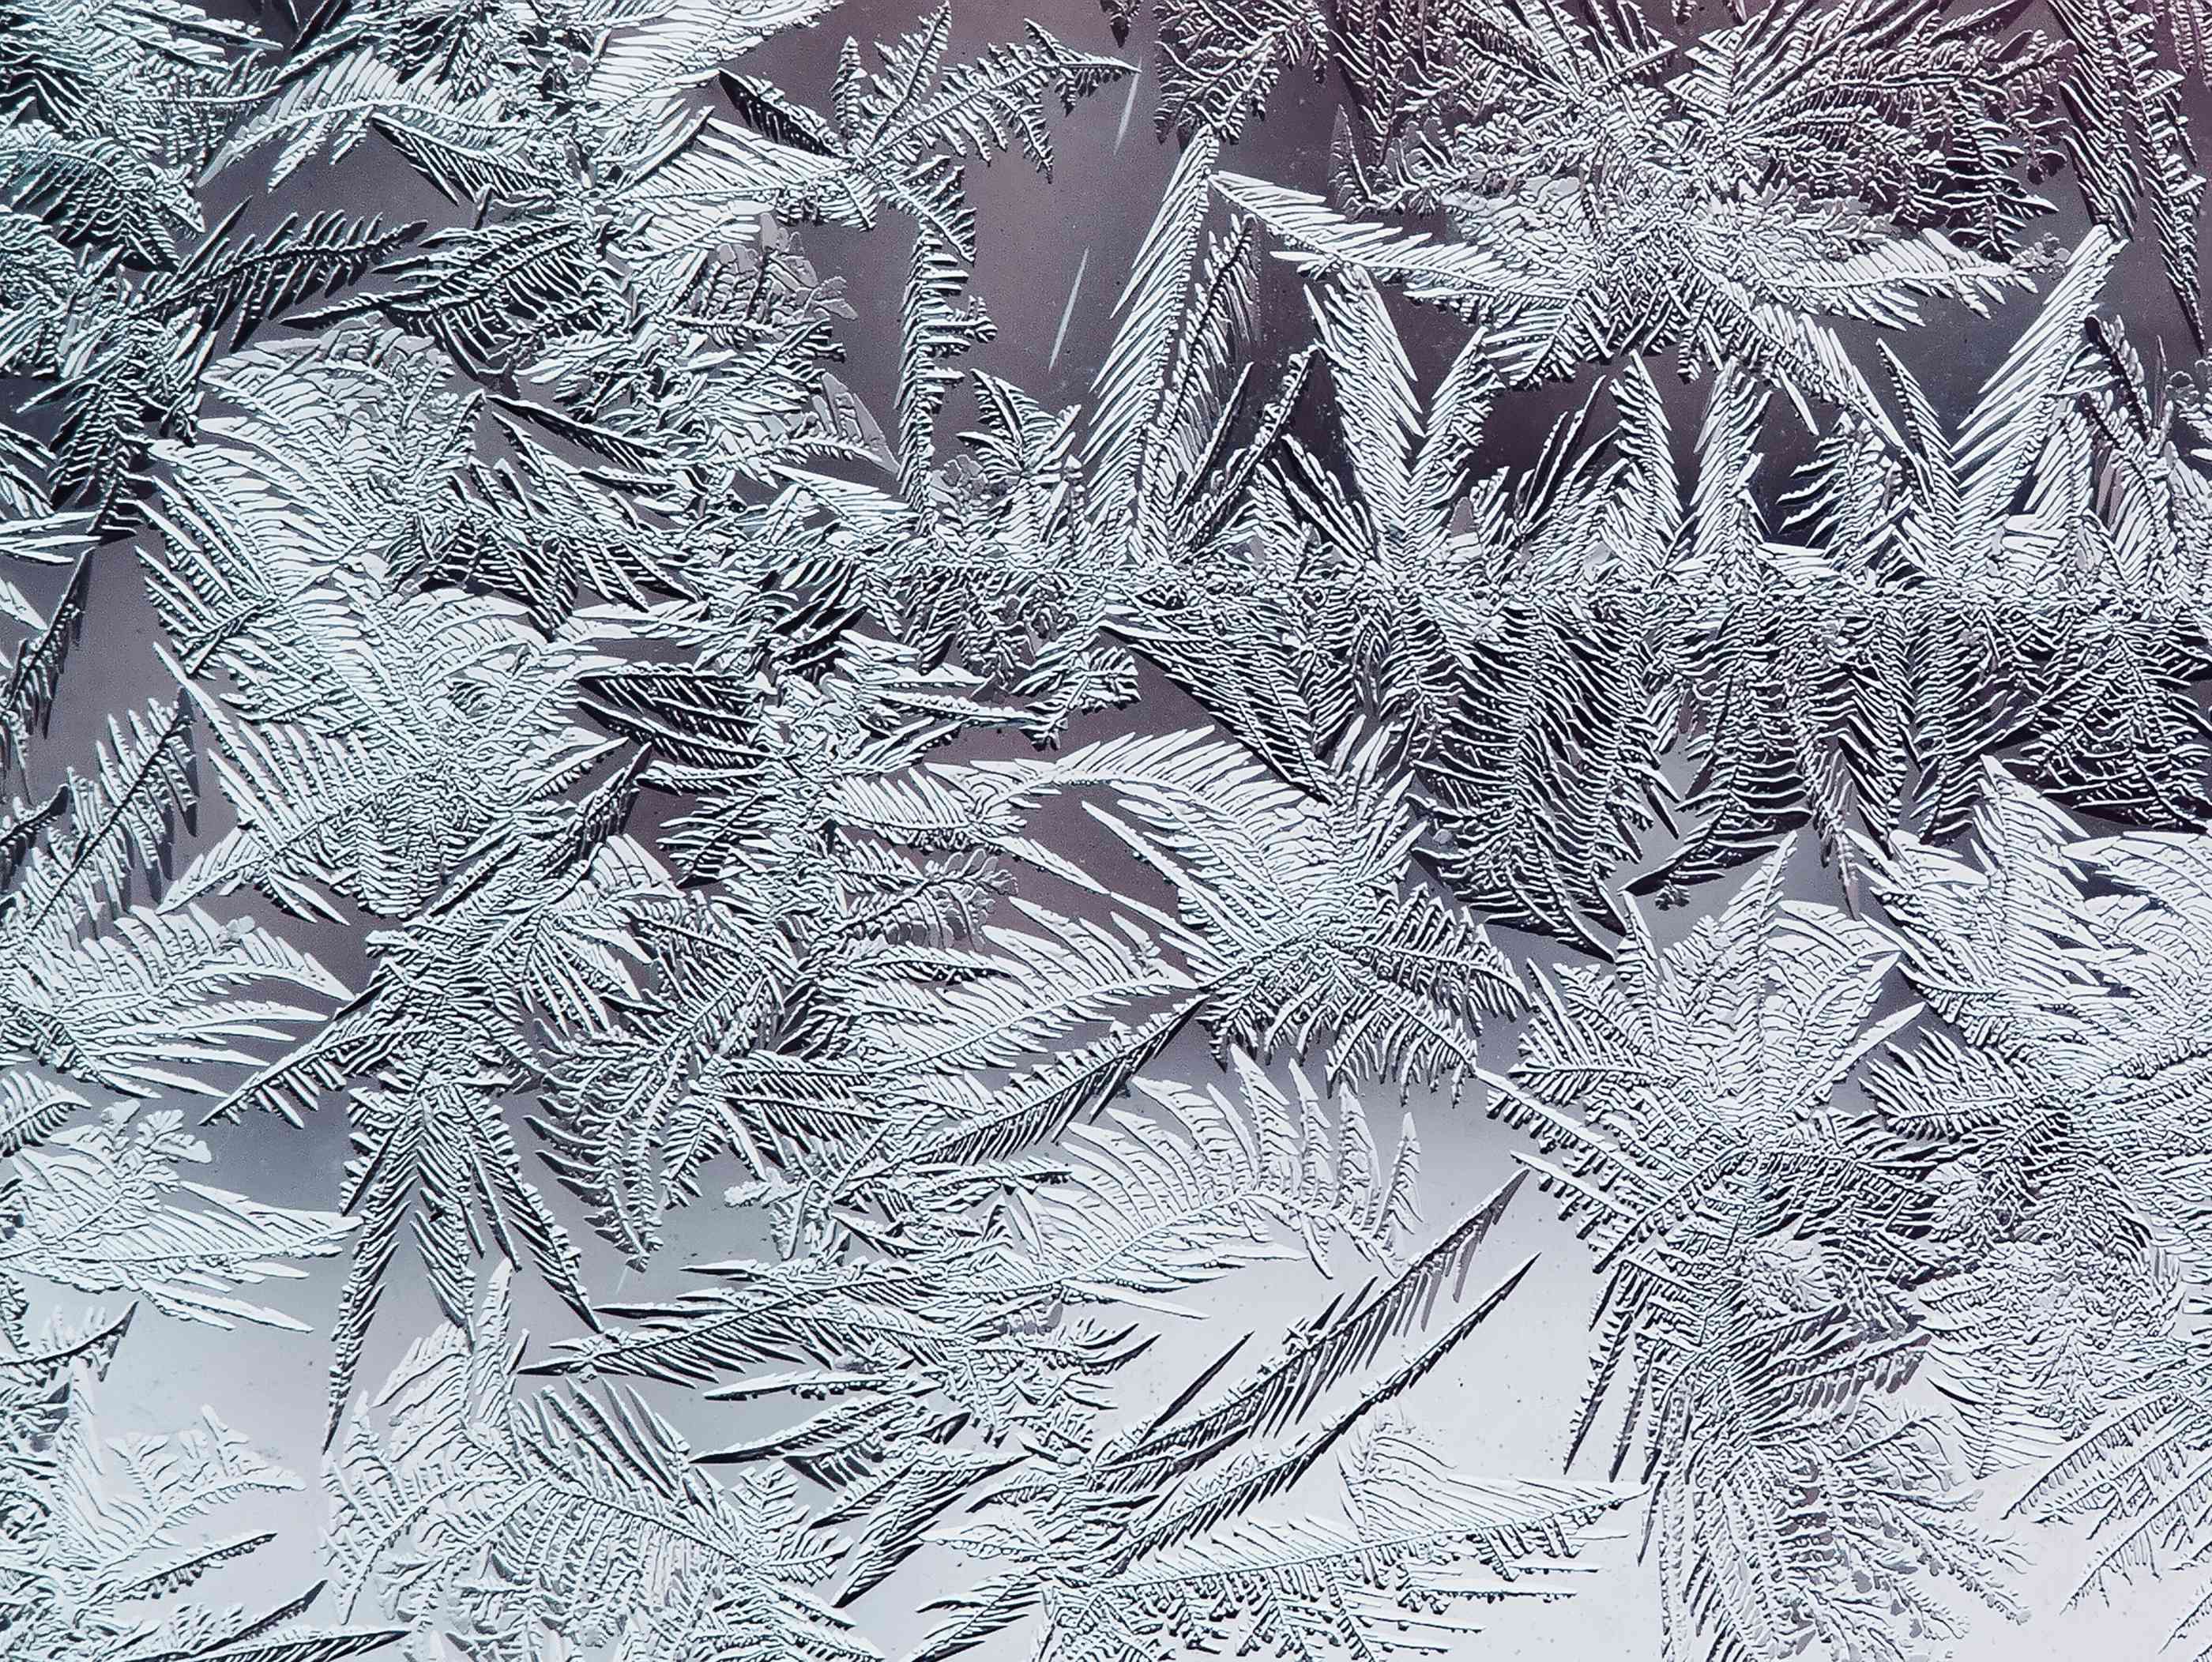 Frost crystals that look like fern, beautiful winter frosty pattern made of brittle transparent crystals on the glass